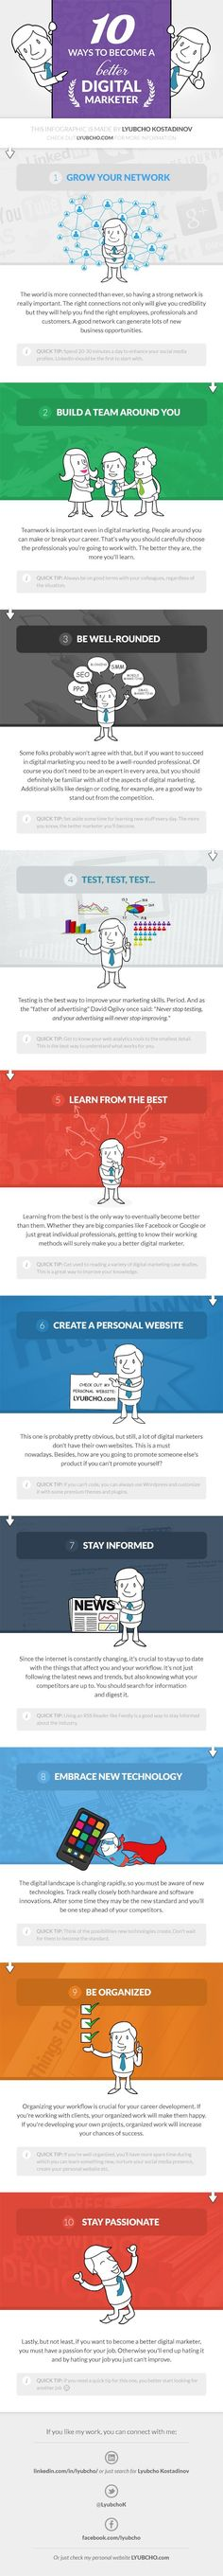 10 Ways to Become a Better Digital Marketer / INFOGRAPHIC